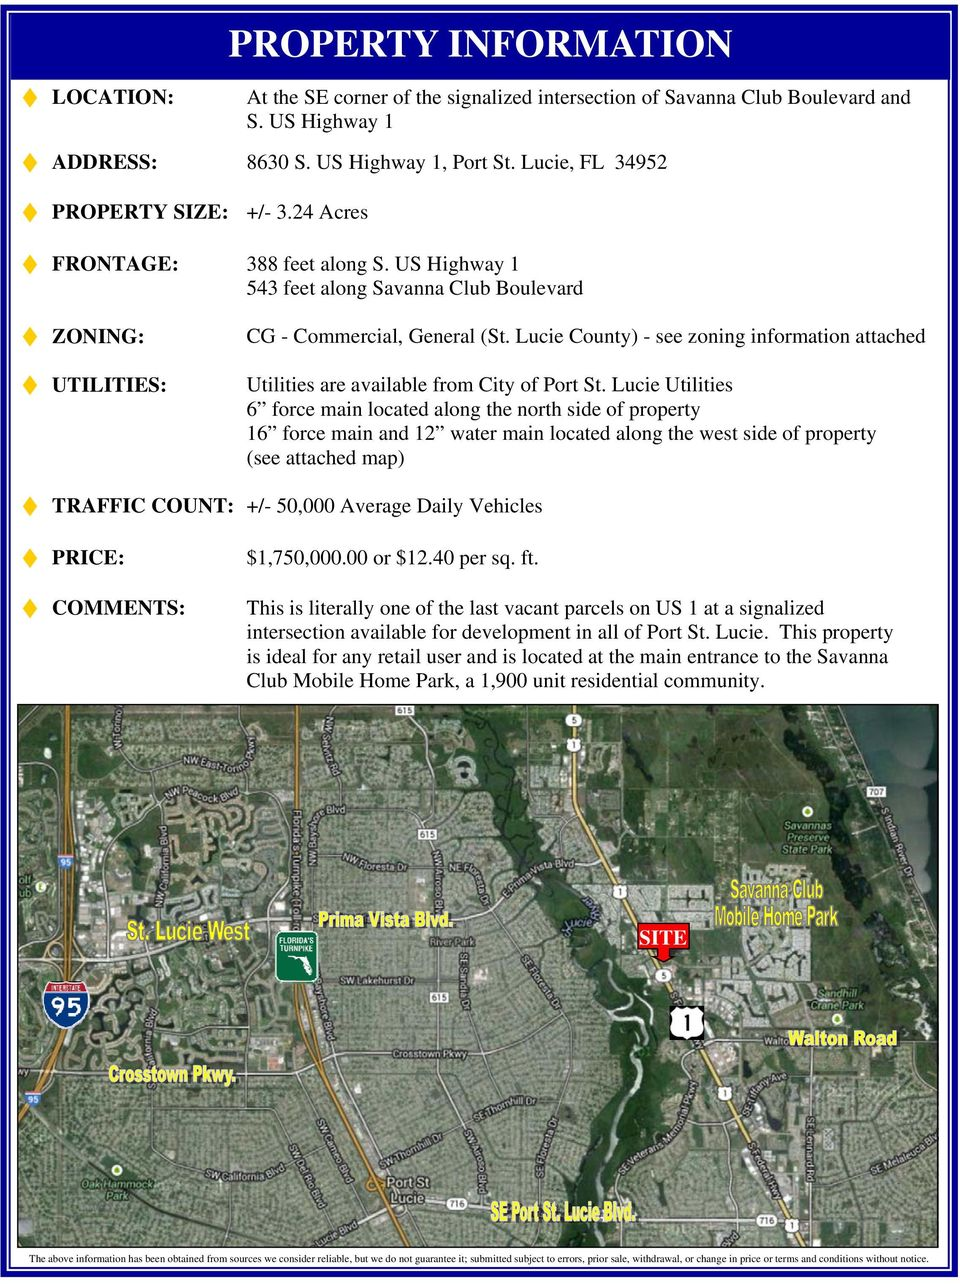 Lucie County) - see zoning information attached Utilities are available from City of Port St.